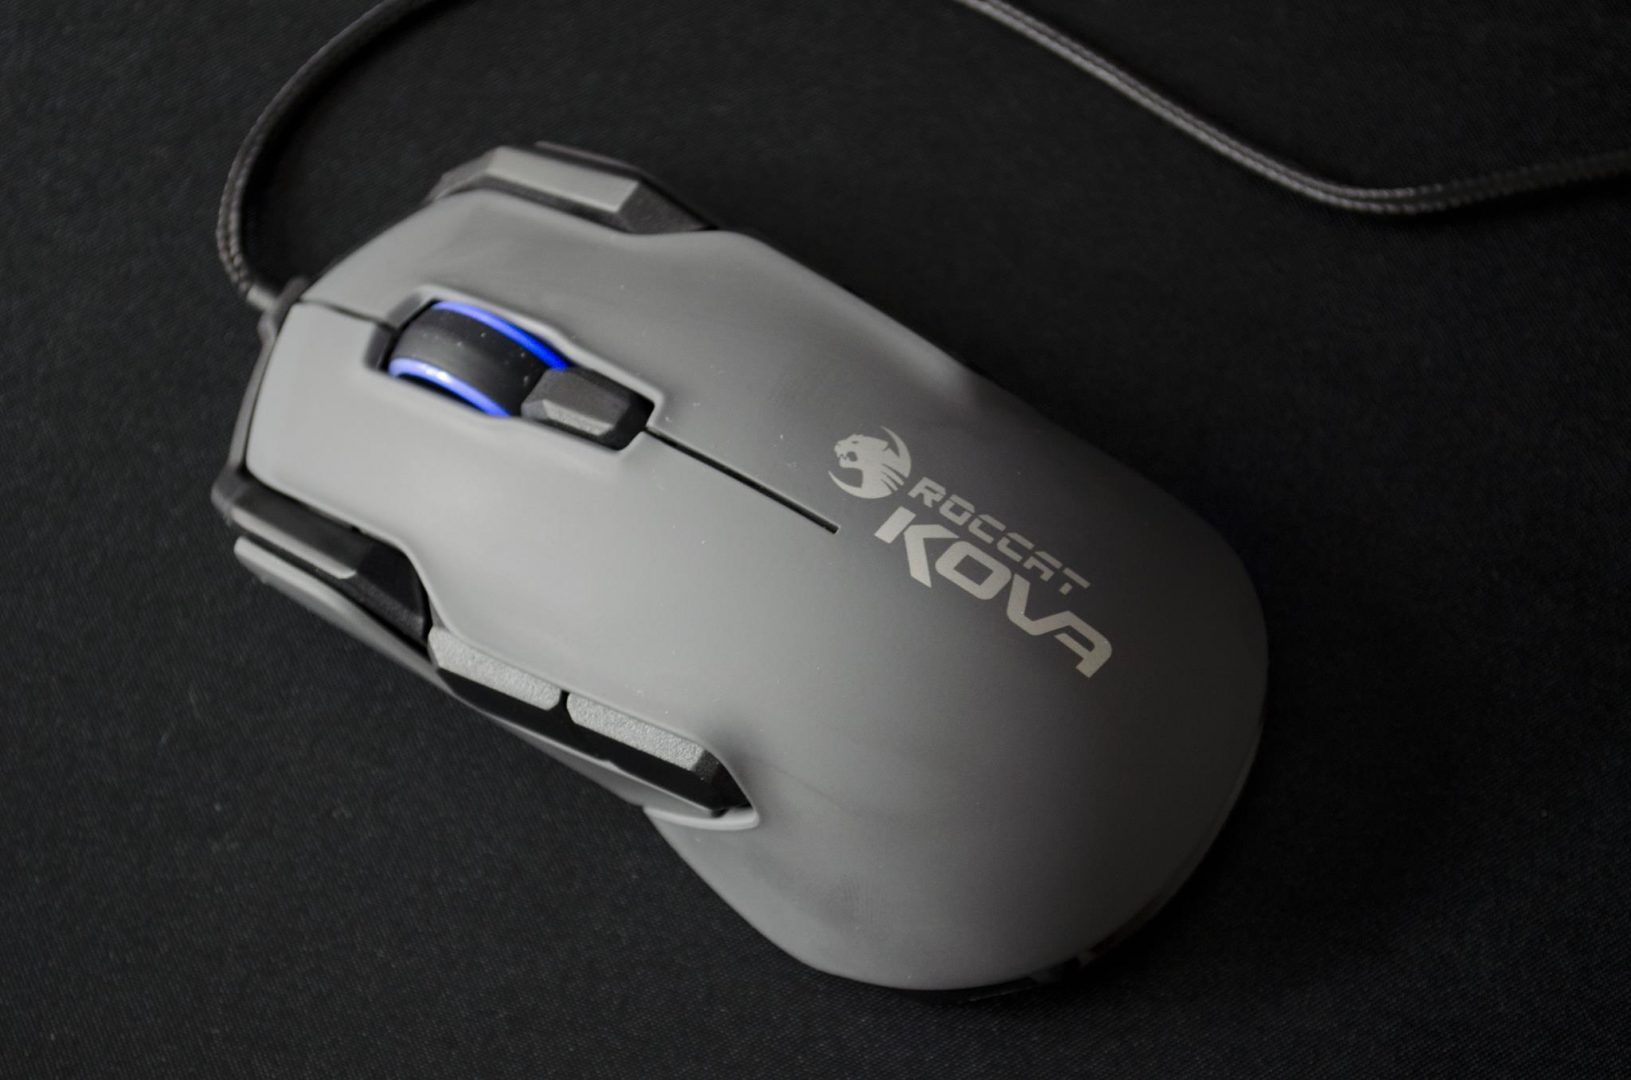 ROCCAT KOVA Pure Performance Gaming Mouse Review